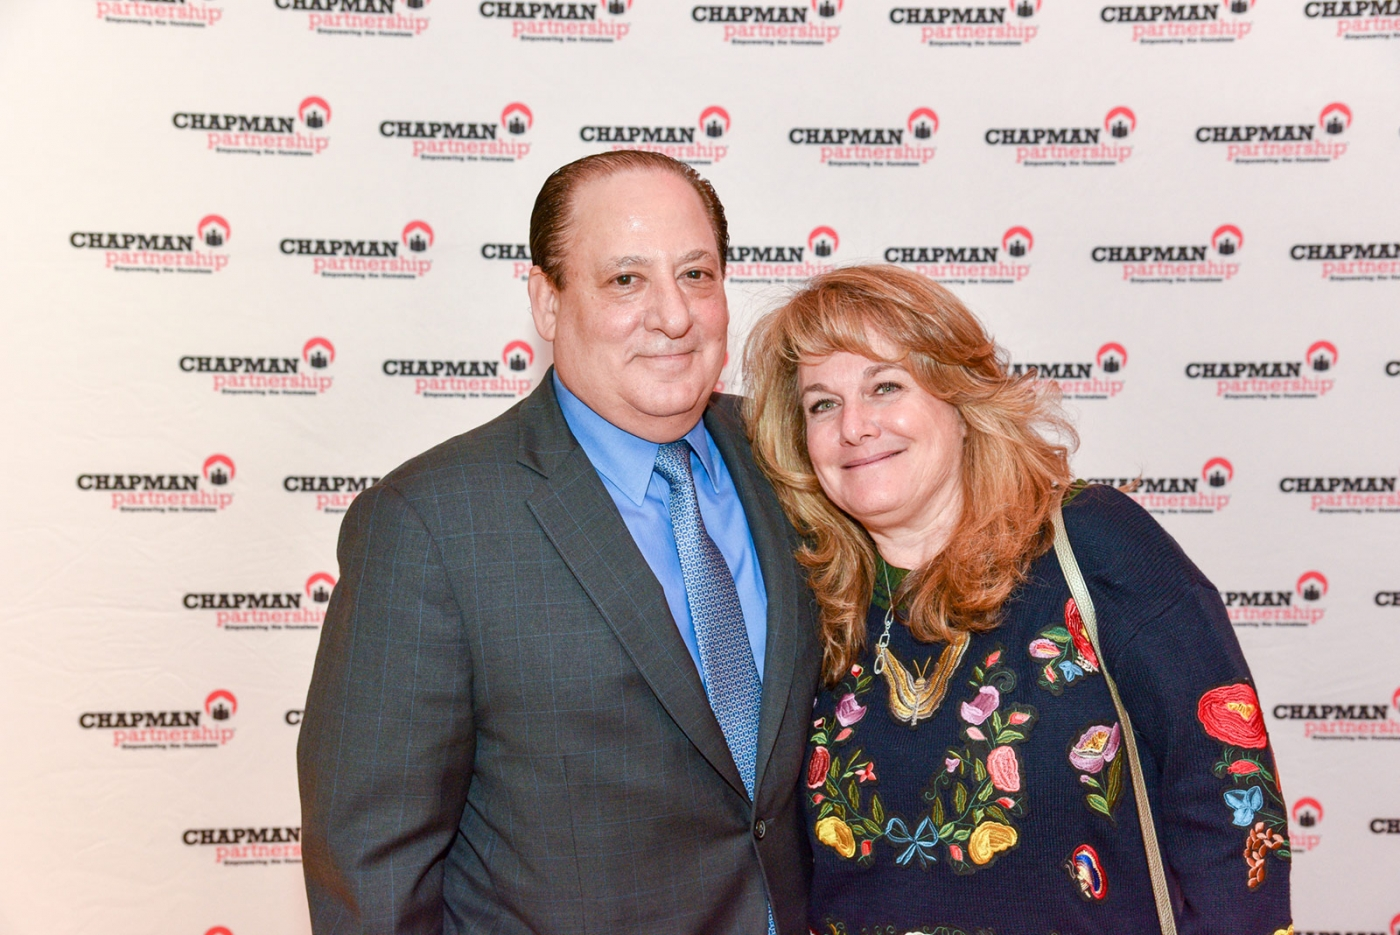 Chapman-Partnership-Board-of-Trustee-Member,-Jay-Steinman-and-his-wife-Riva-AGS_6916